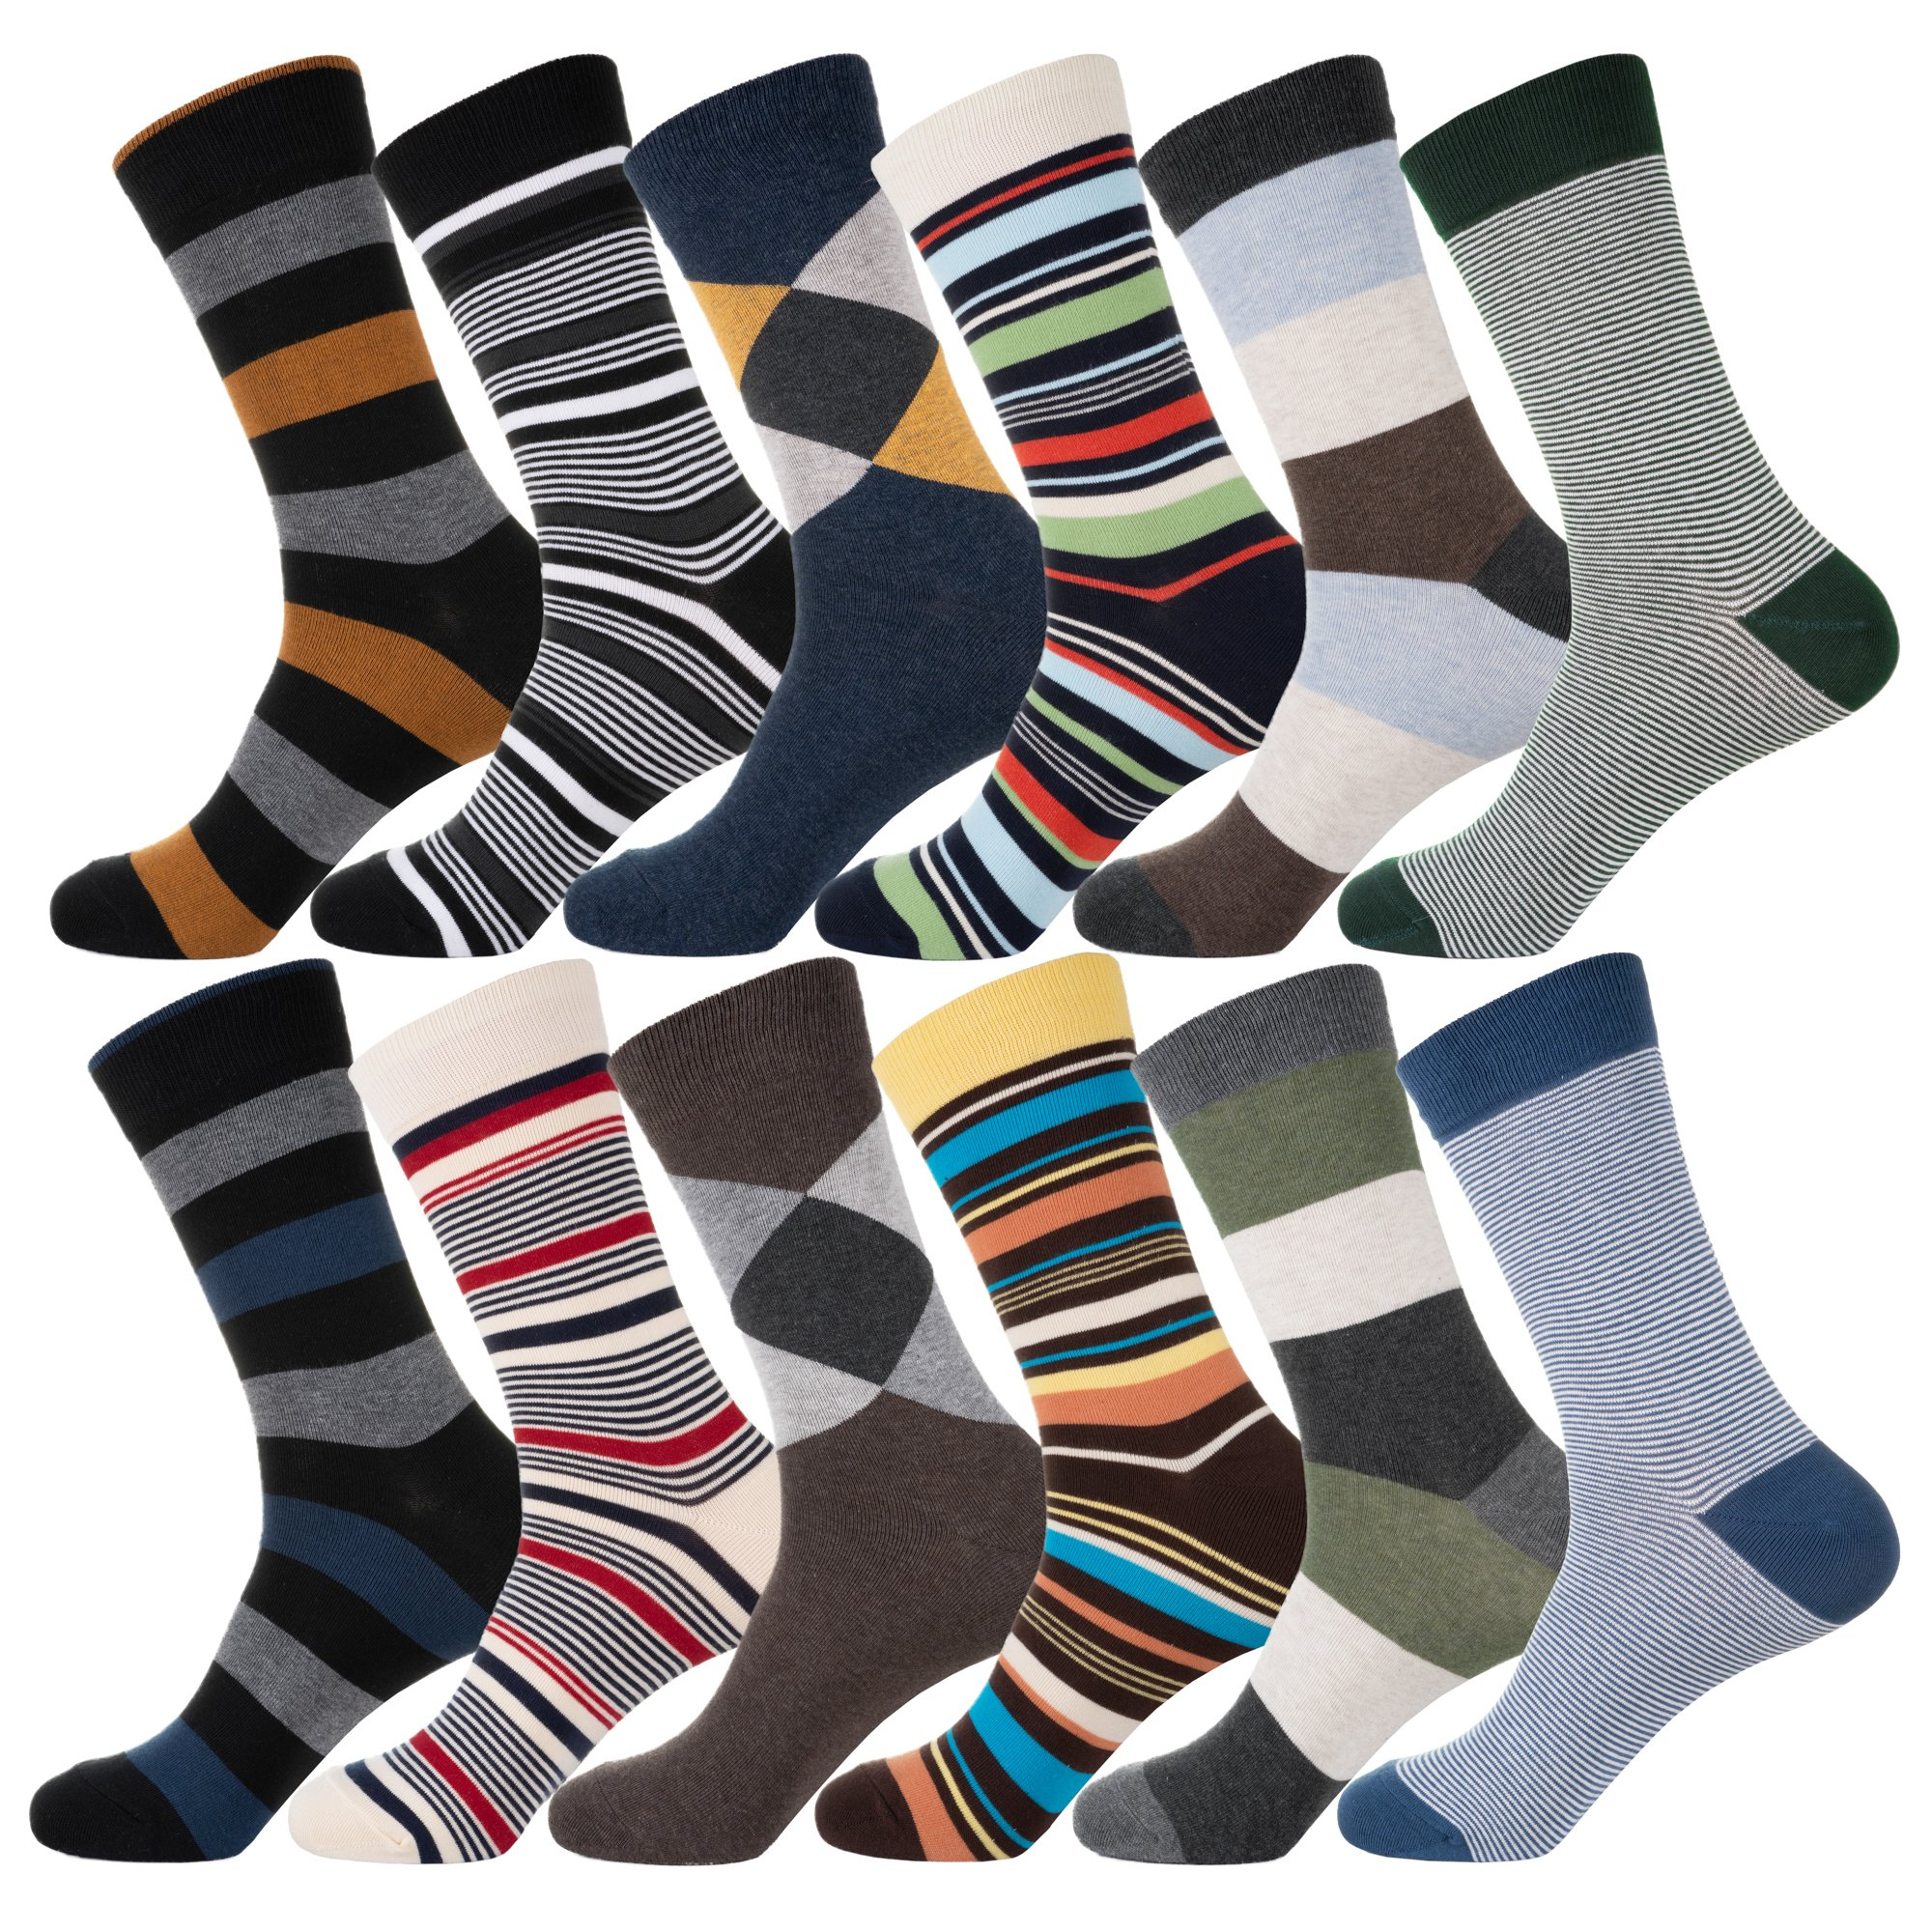 YourFeet Men's 12 Pack Thin Cotton Colorful Stripe Argyle Designed Business Dress Socks Gift Size 9-12 (Assorted-2) by KONY (Image #1)